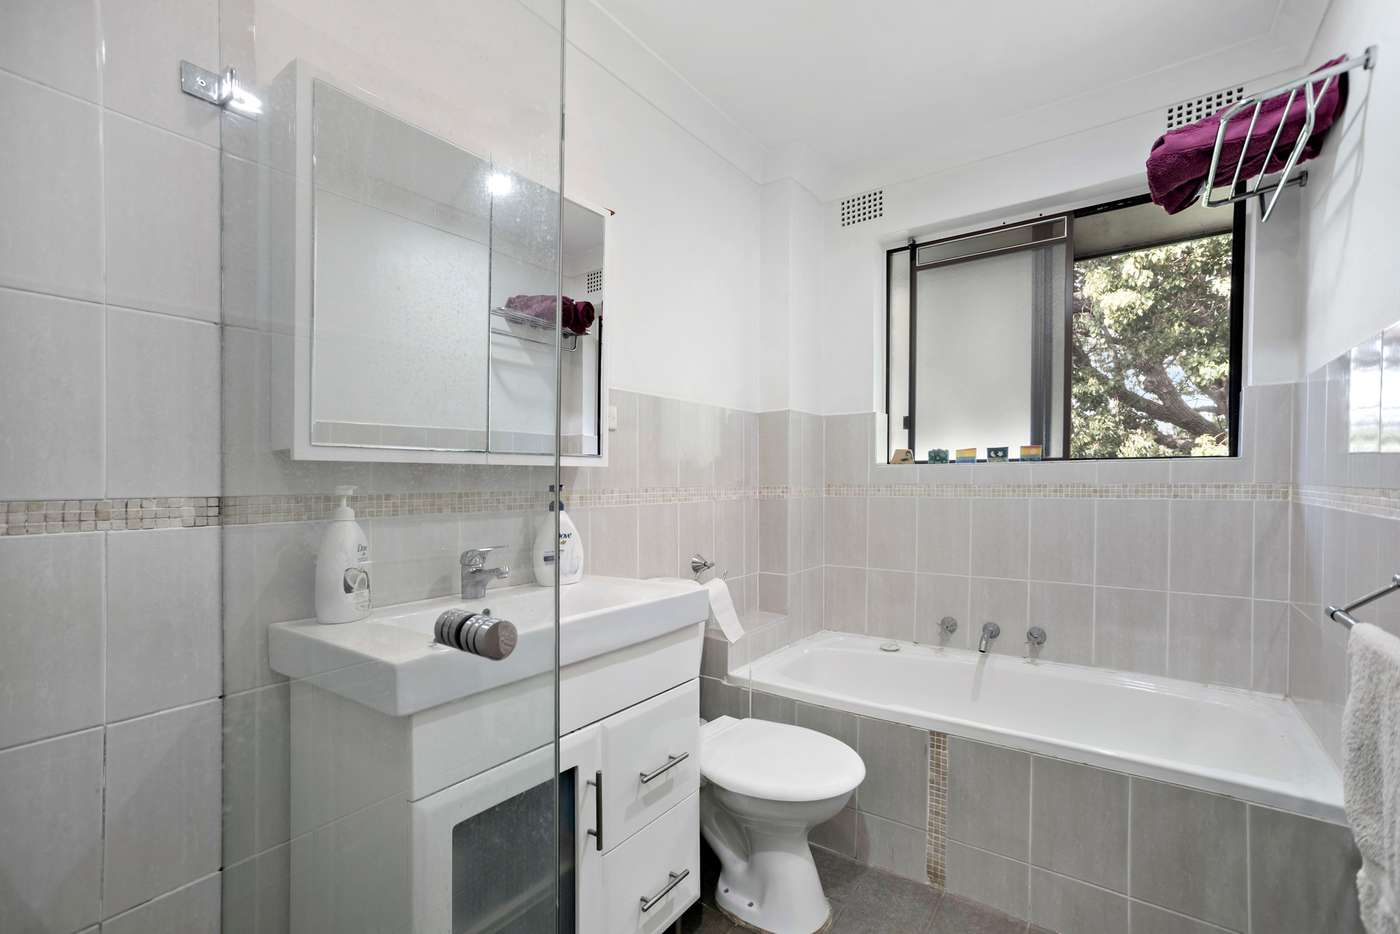 Sixth view of Homely apartment listing, 11/15-17 Albert Parade, Ashfield NSW 2131